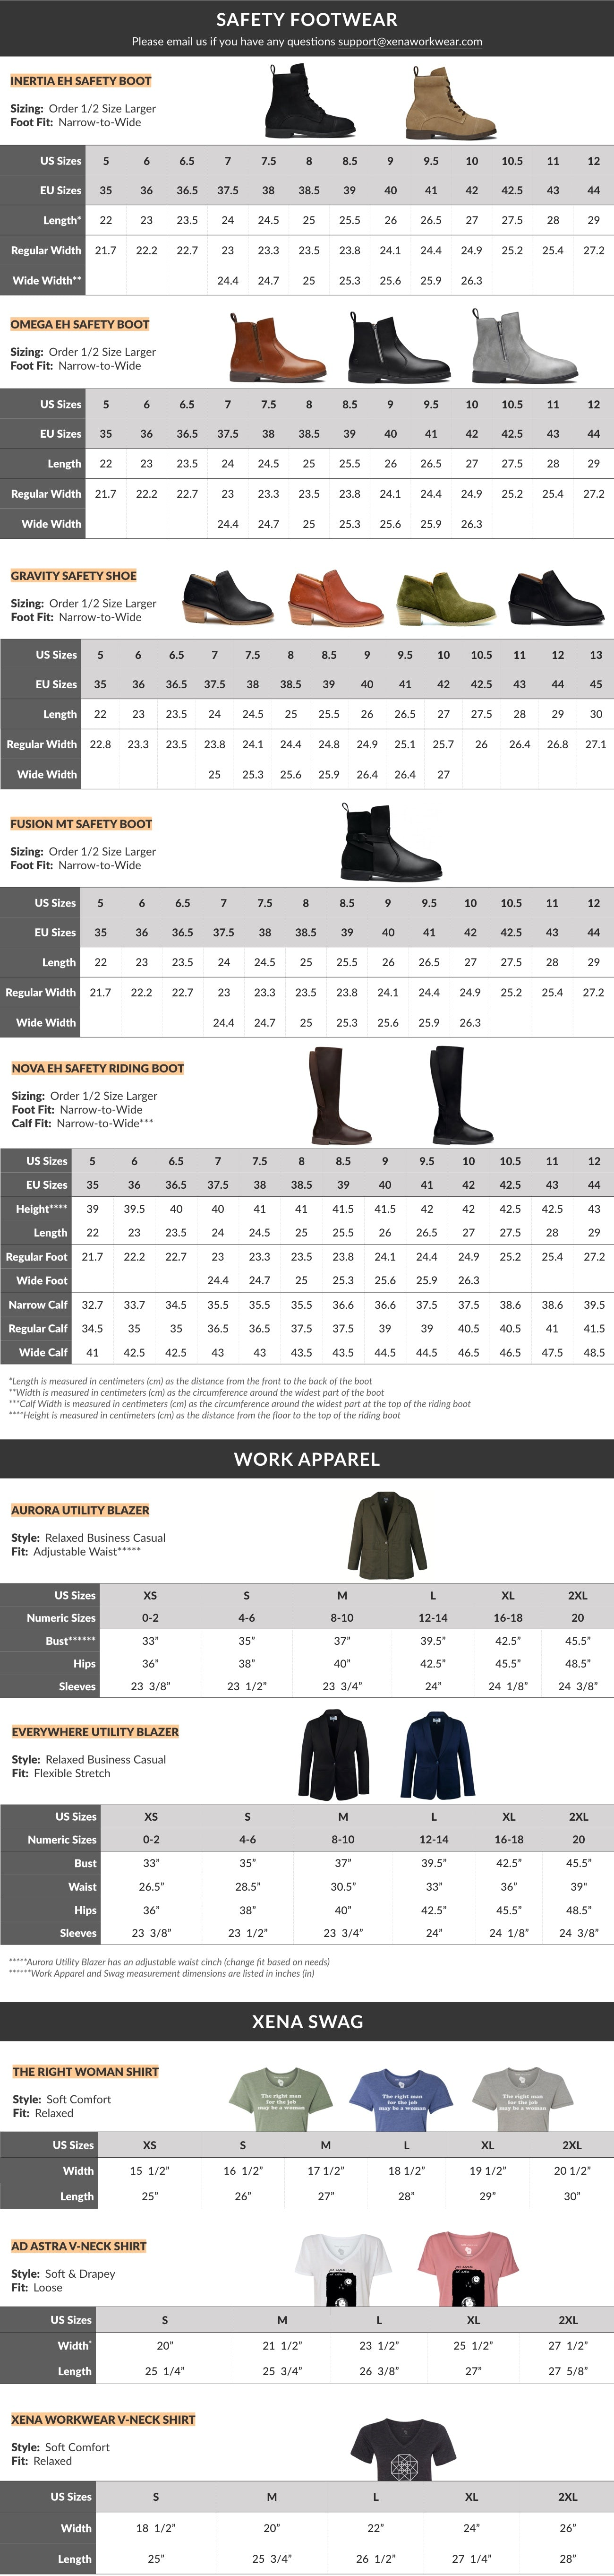 Xena Workwear Size Guide for Women's Steel-Toe Safety Shoes, Boots, Booties, Blazers, and Shirts